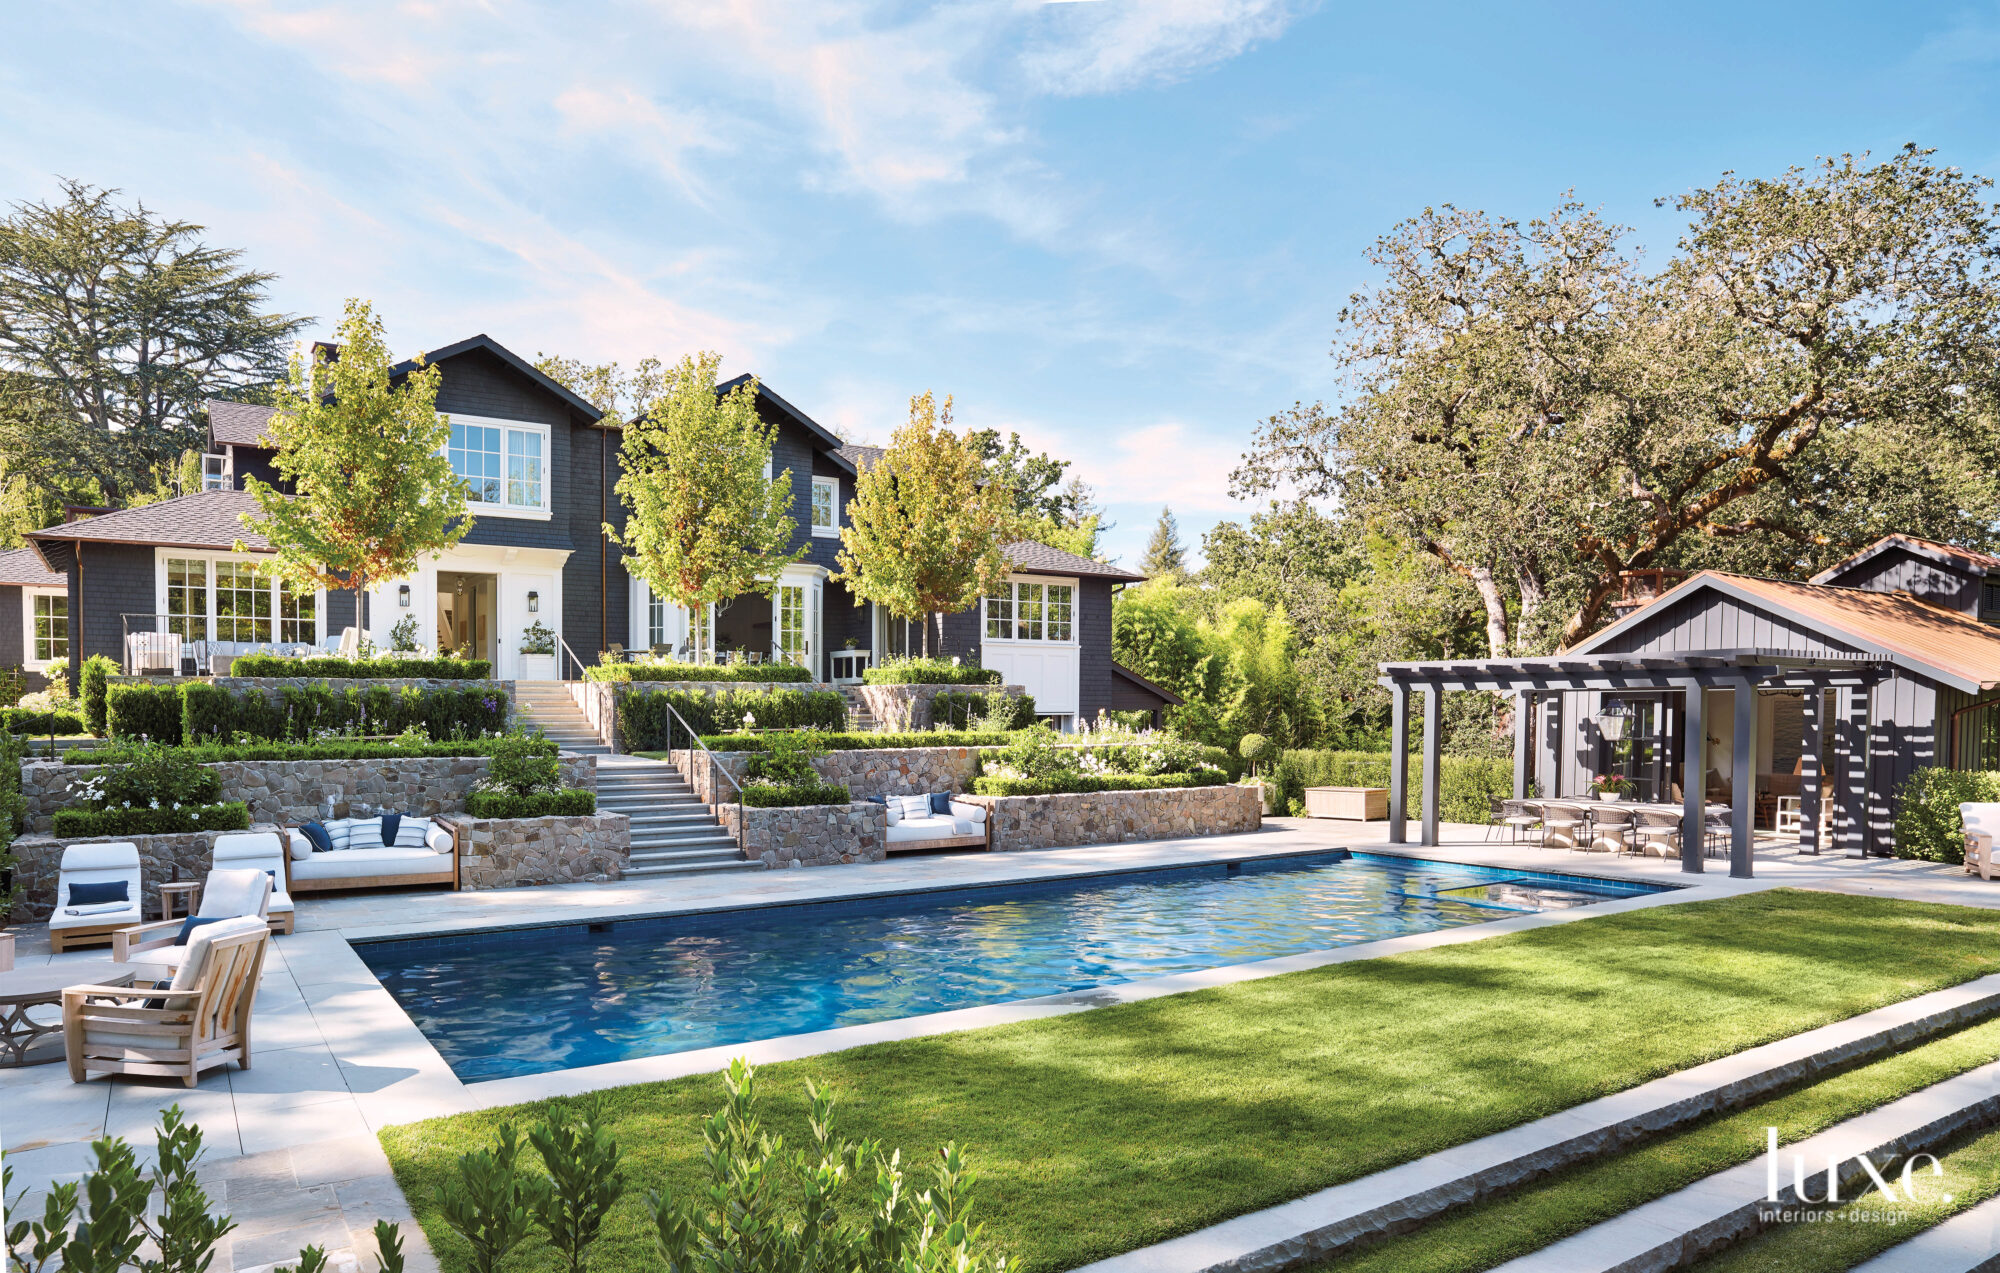 The exterior has lush green plantings and a pool.